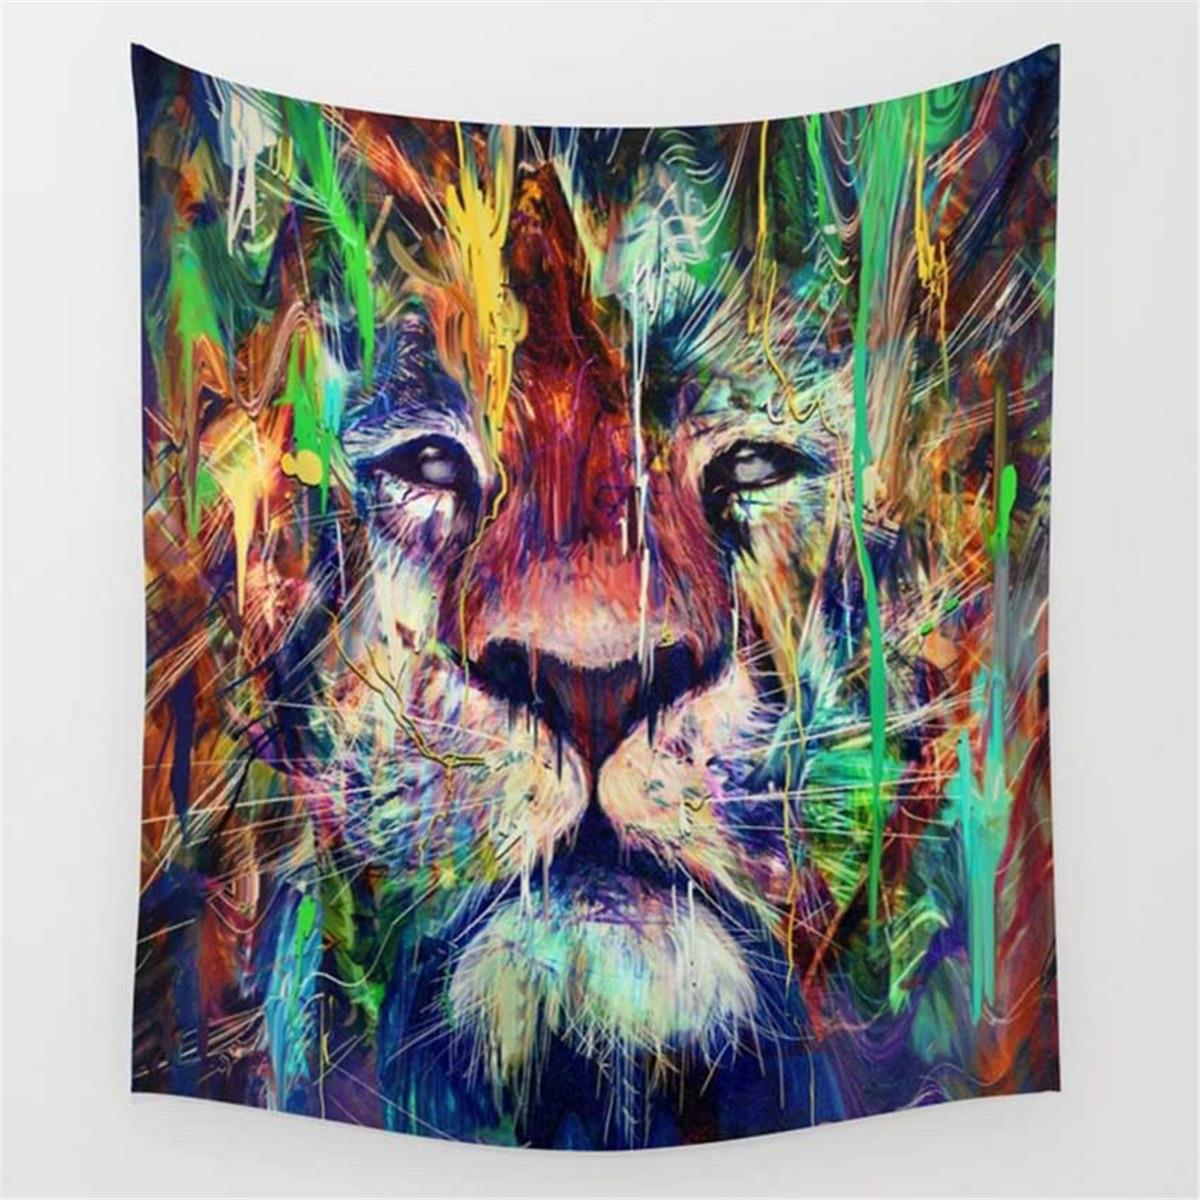 Colorful Tiger Tapestry Wall Hanging 150x130cm Mandala Hippies Bohemian Bedspread Decoration Dorm Cover Beach Towel Mat Gifts In From Home Garden